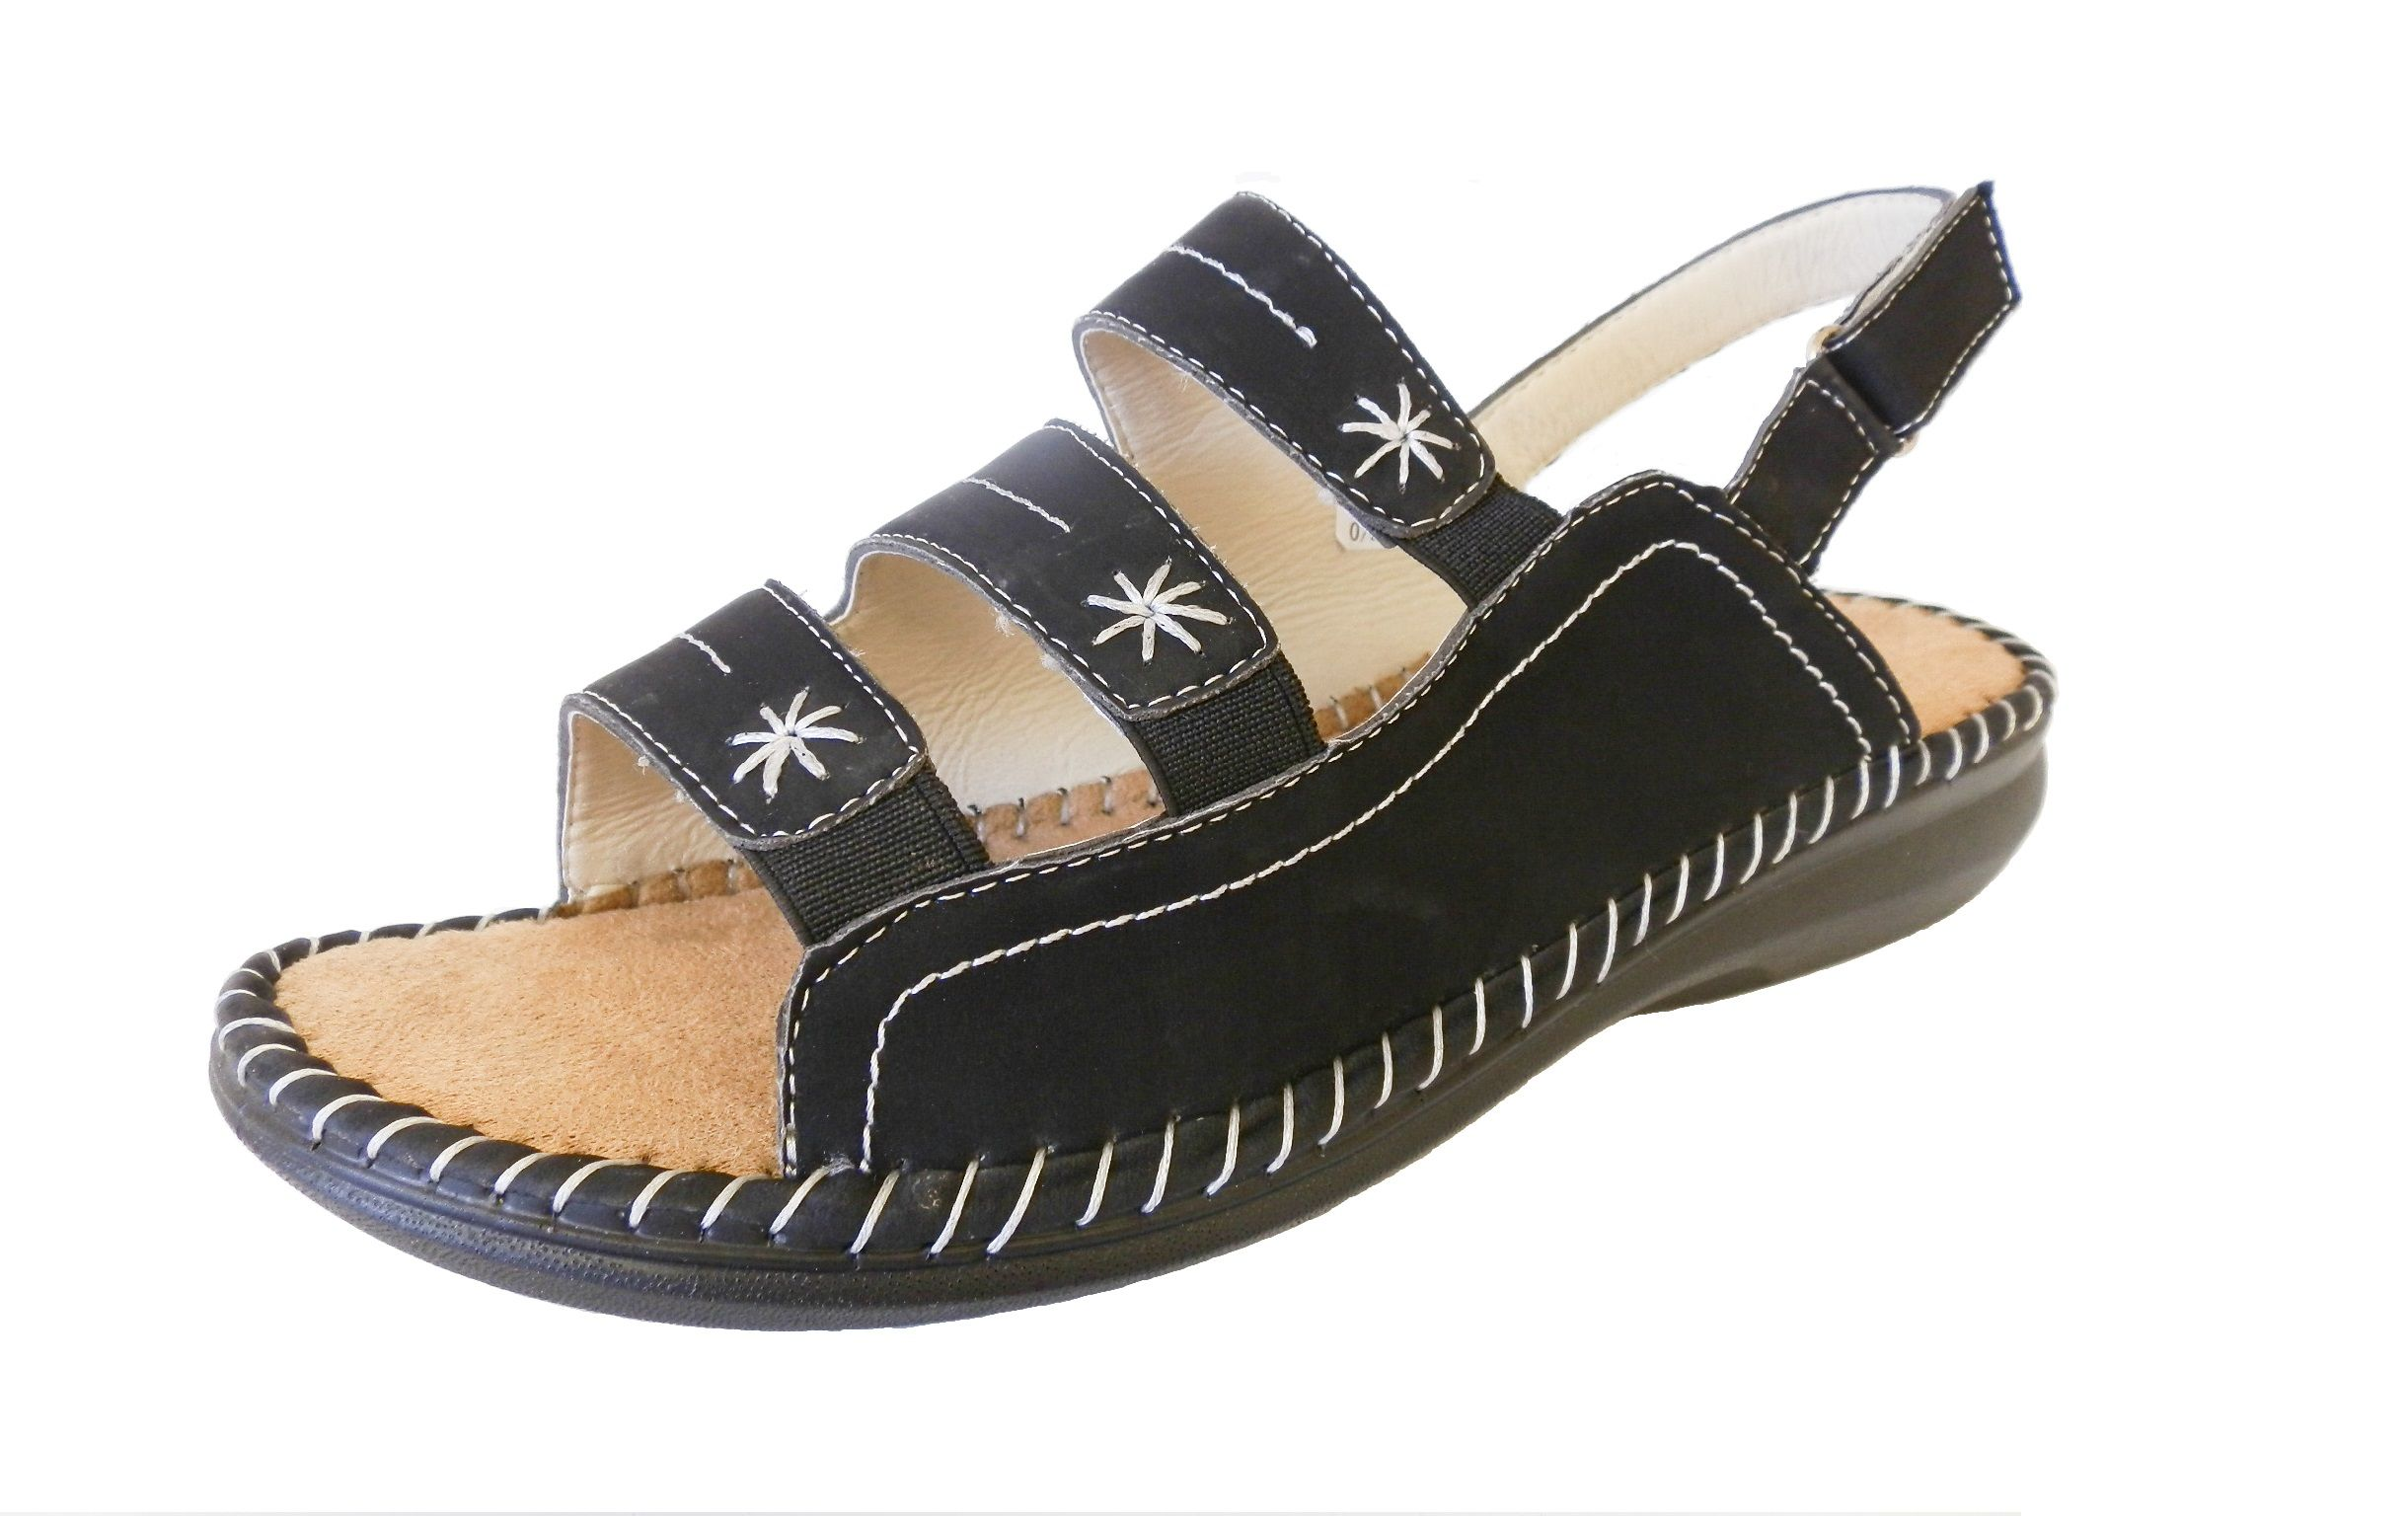 Sandals shoes comfortable - Womens Low Wedge Elasticated Comfort Sandals Cushioned Ladies Shoes Size Uk 4 8